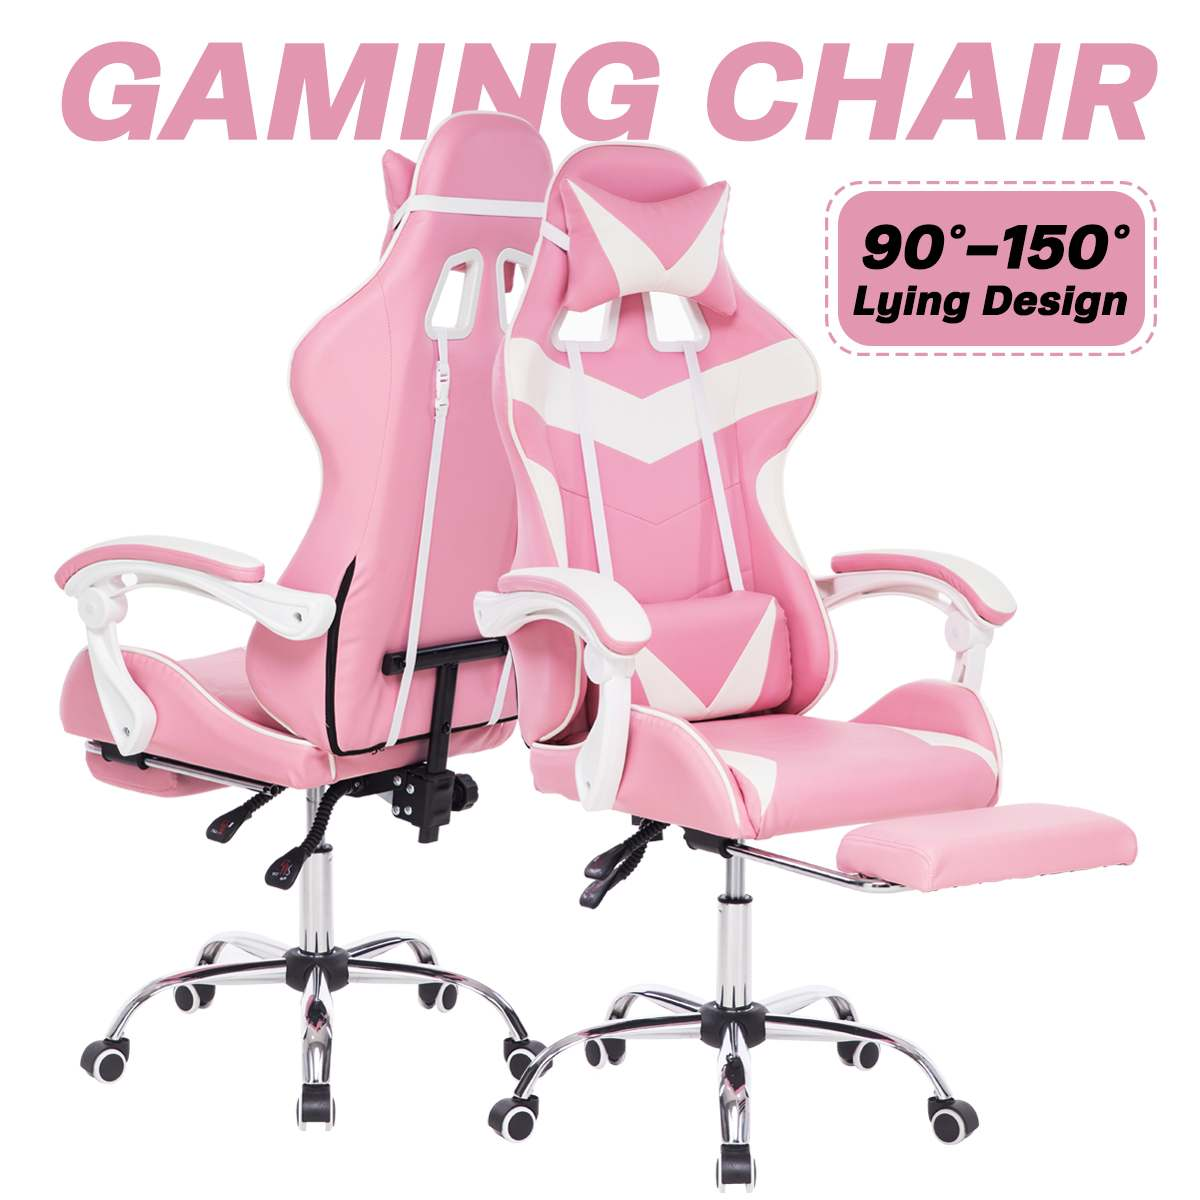 Heebcbb8e05384f43b6e79e793c72b264h - Office Chair WCG Computer Gaming Chair Reclining Armchair with Footrest Internet Cafe Gamer Chair Office Furniture Pink Chair